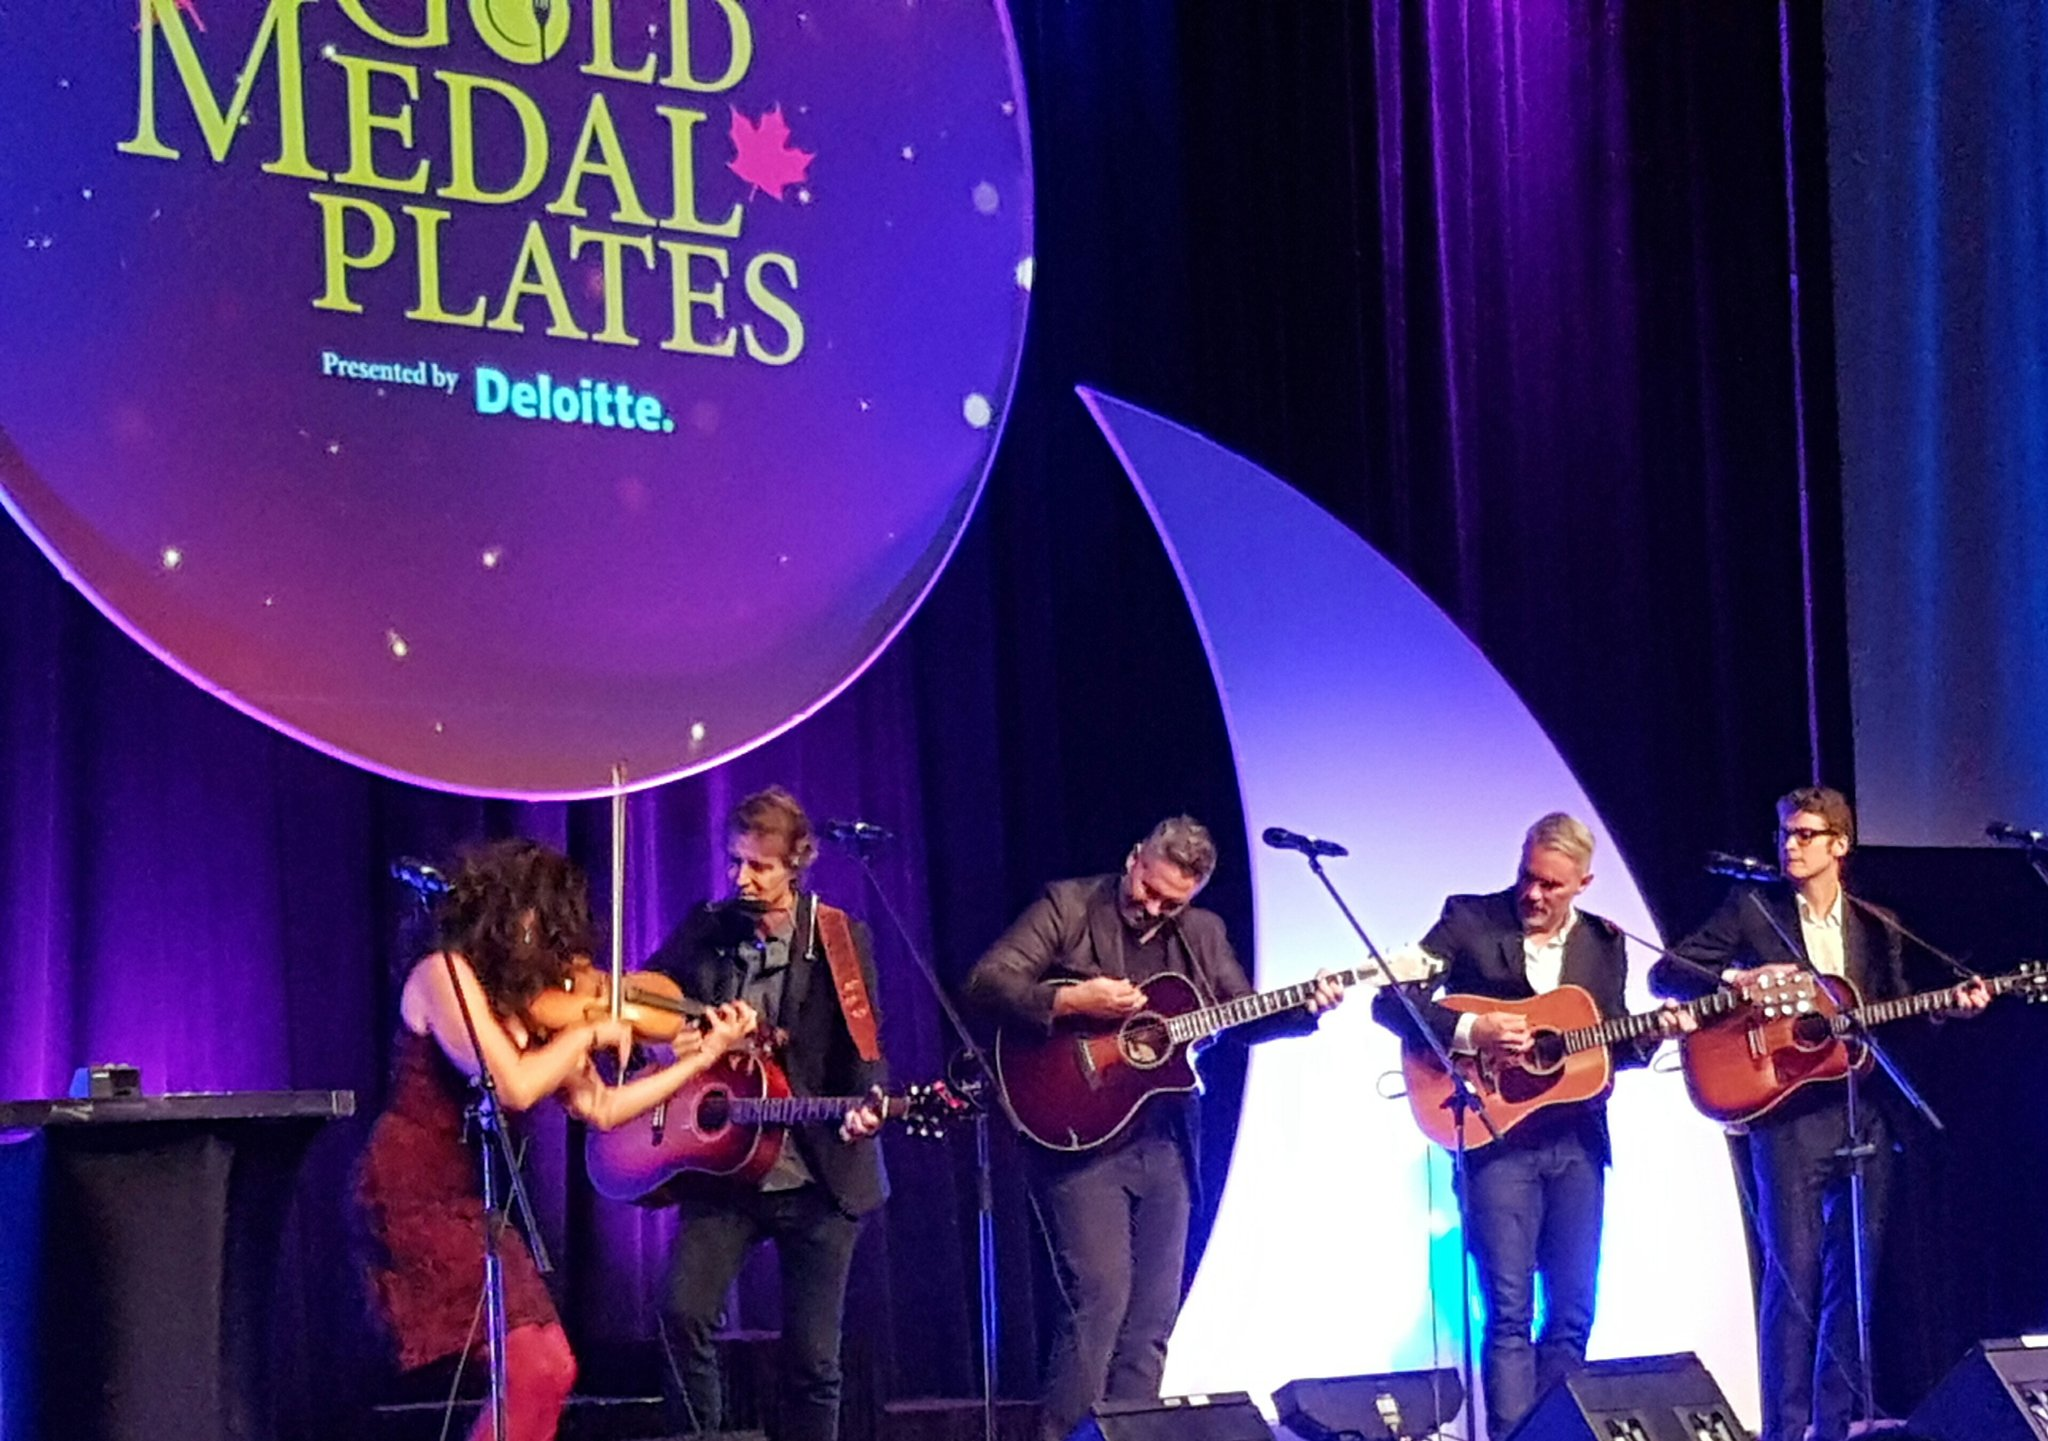 Thanks @JimCuddy, @barneybentall, @ColinCripps, @violindsay, @DevinCuddy and Sam Polley for the great entertainment at tonight's #GMPOttawa! https://t.co/hONQiK5rhq